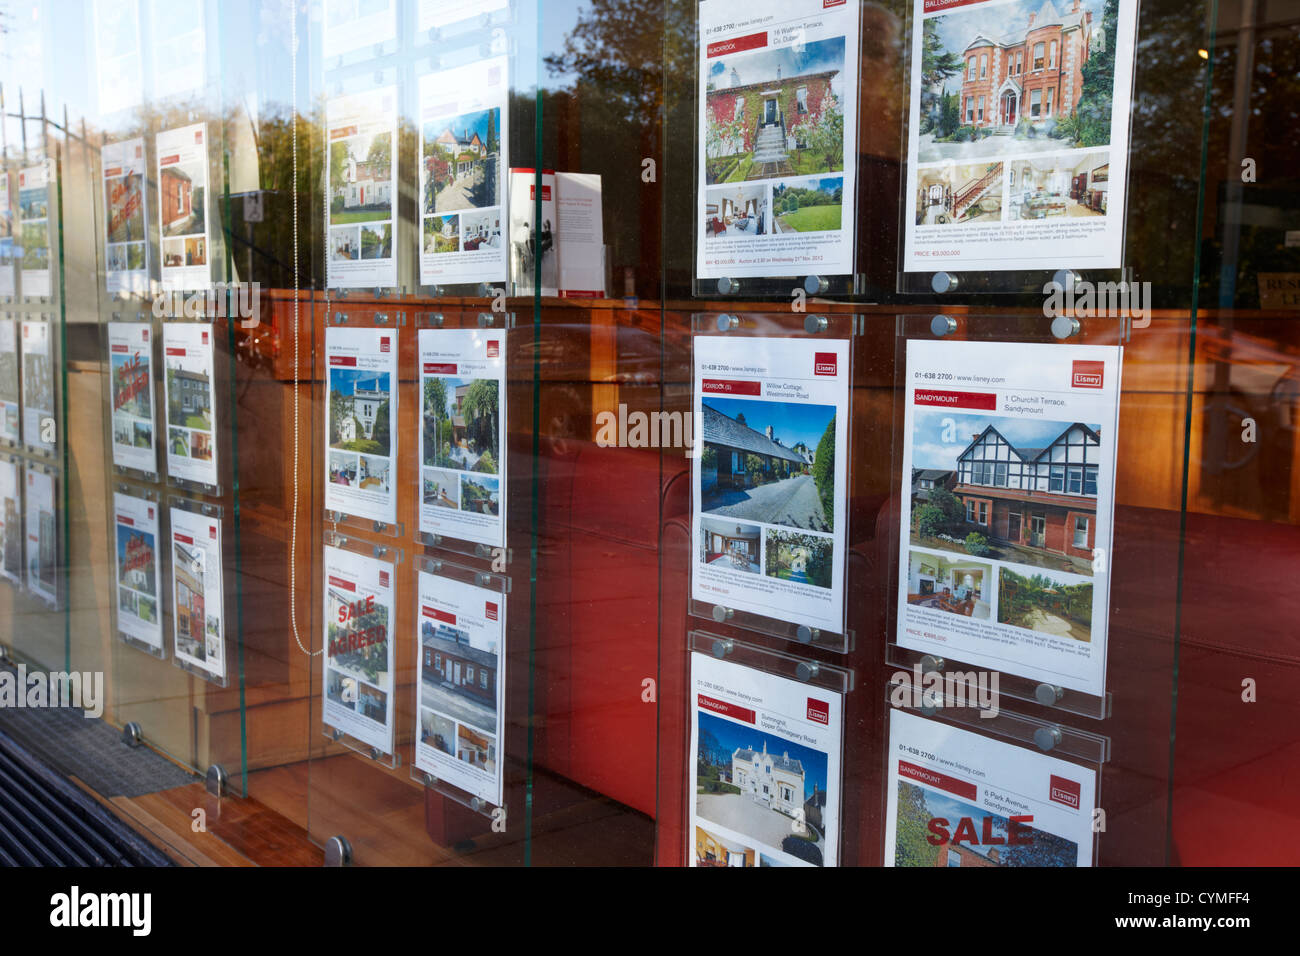 properties for sale in an estate agent window in central dublin republic of ireland - Stock Image